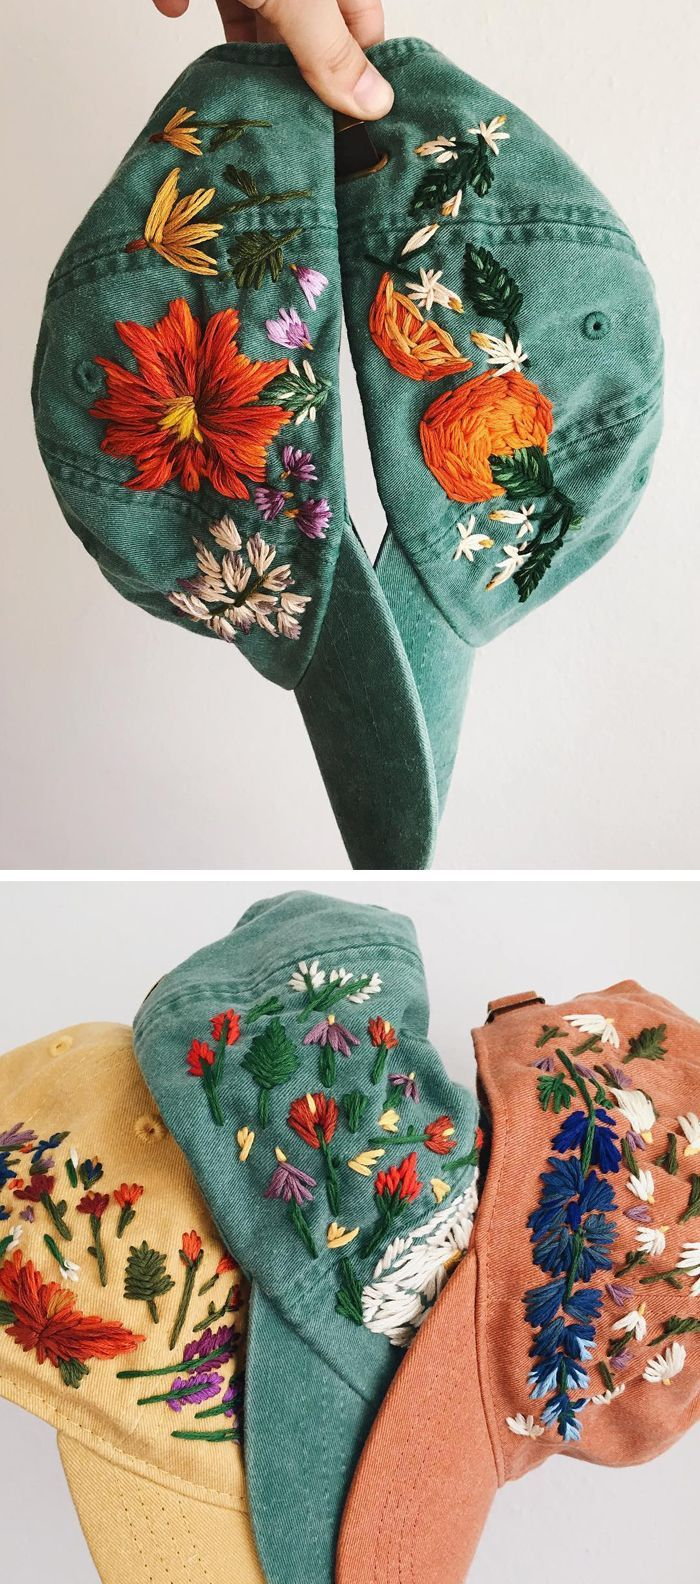 Hand-Embroidered Hats Let You Root for Your Favorite Team… Flowers